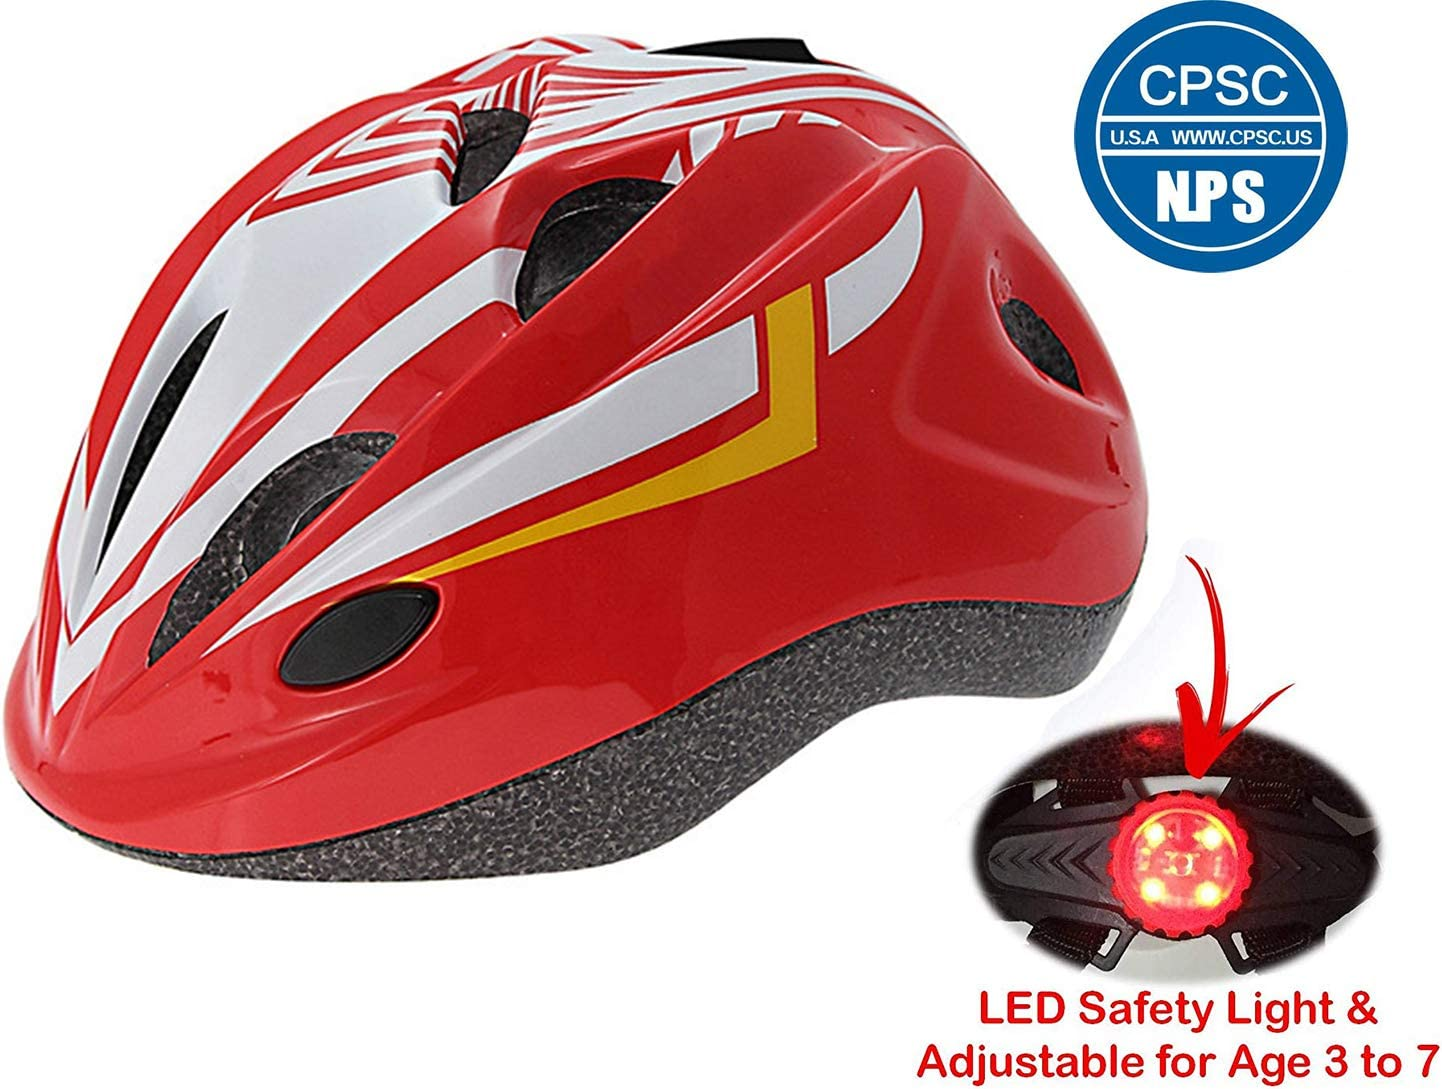 Cloubike Kids Bike Helmet with LED Safety Light and CPSC Certified for Kids Cycling Safety Protection-Adjustable Large Size 19.68-22.83 Inches Ages 3-7